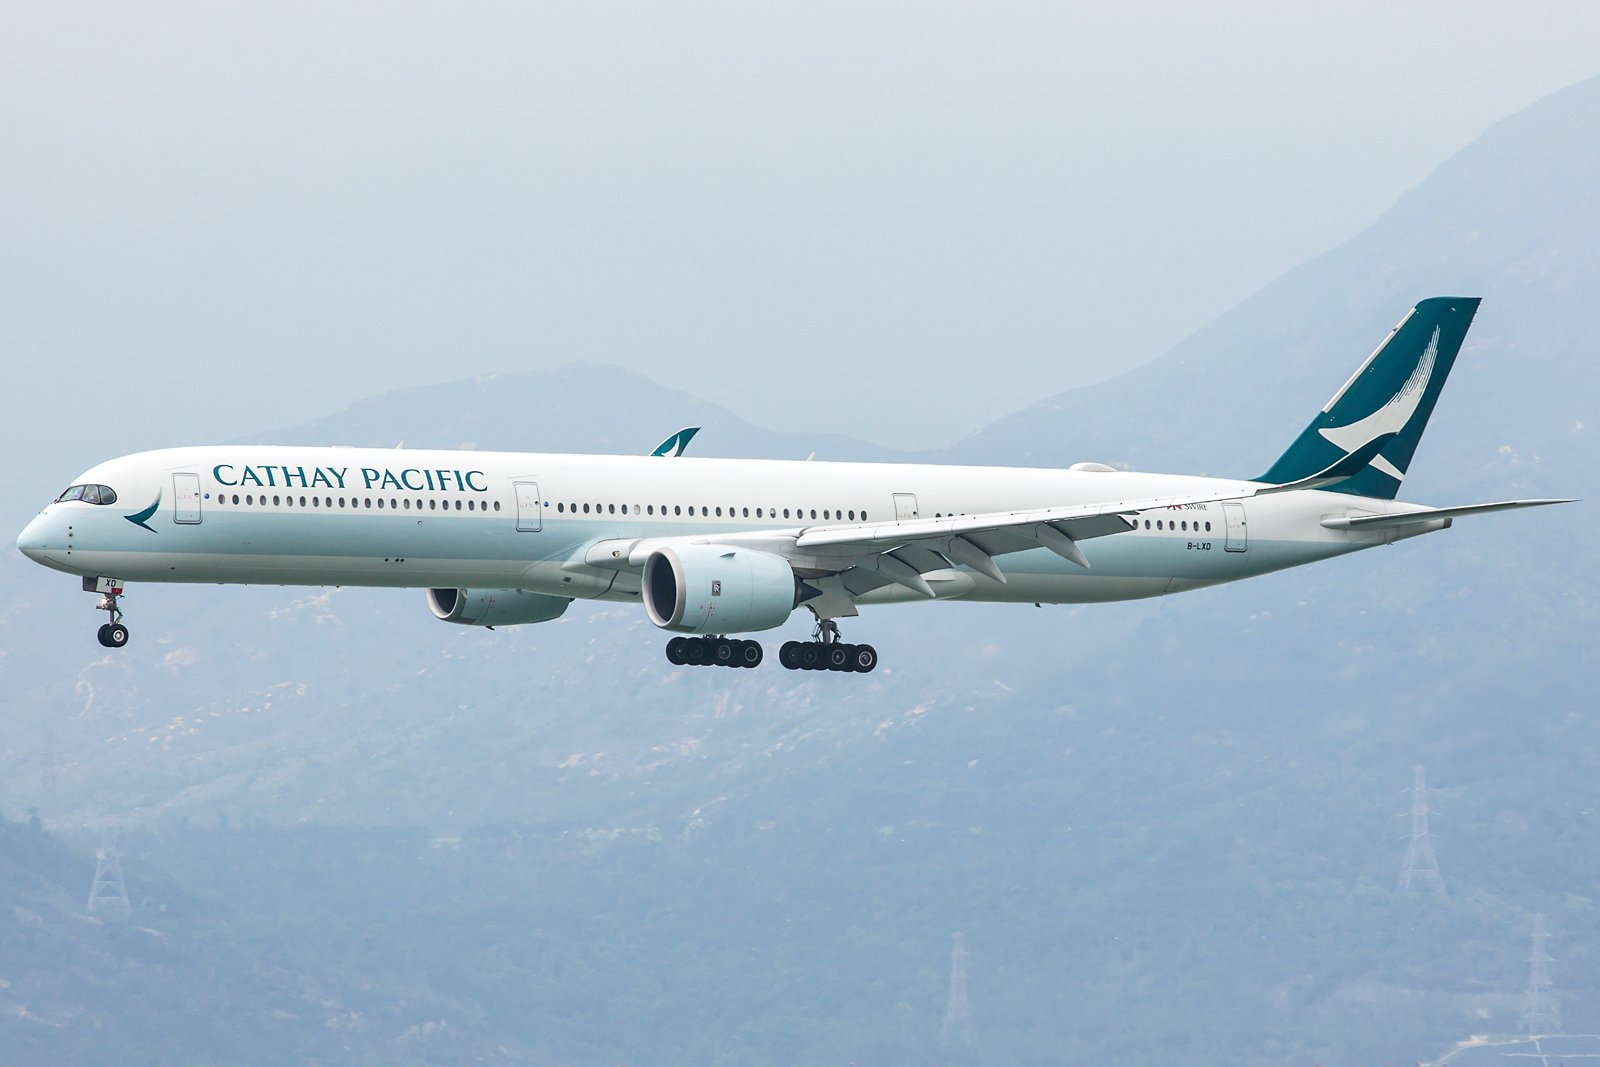 Cathay Pacific Airbus A350-1041 B-LXD